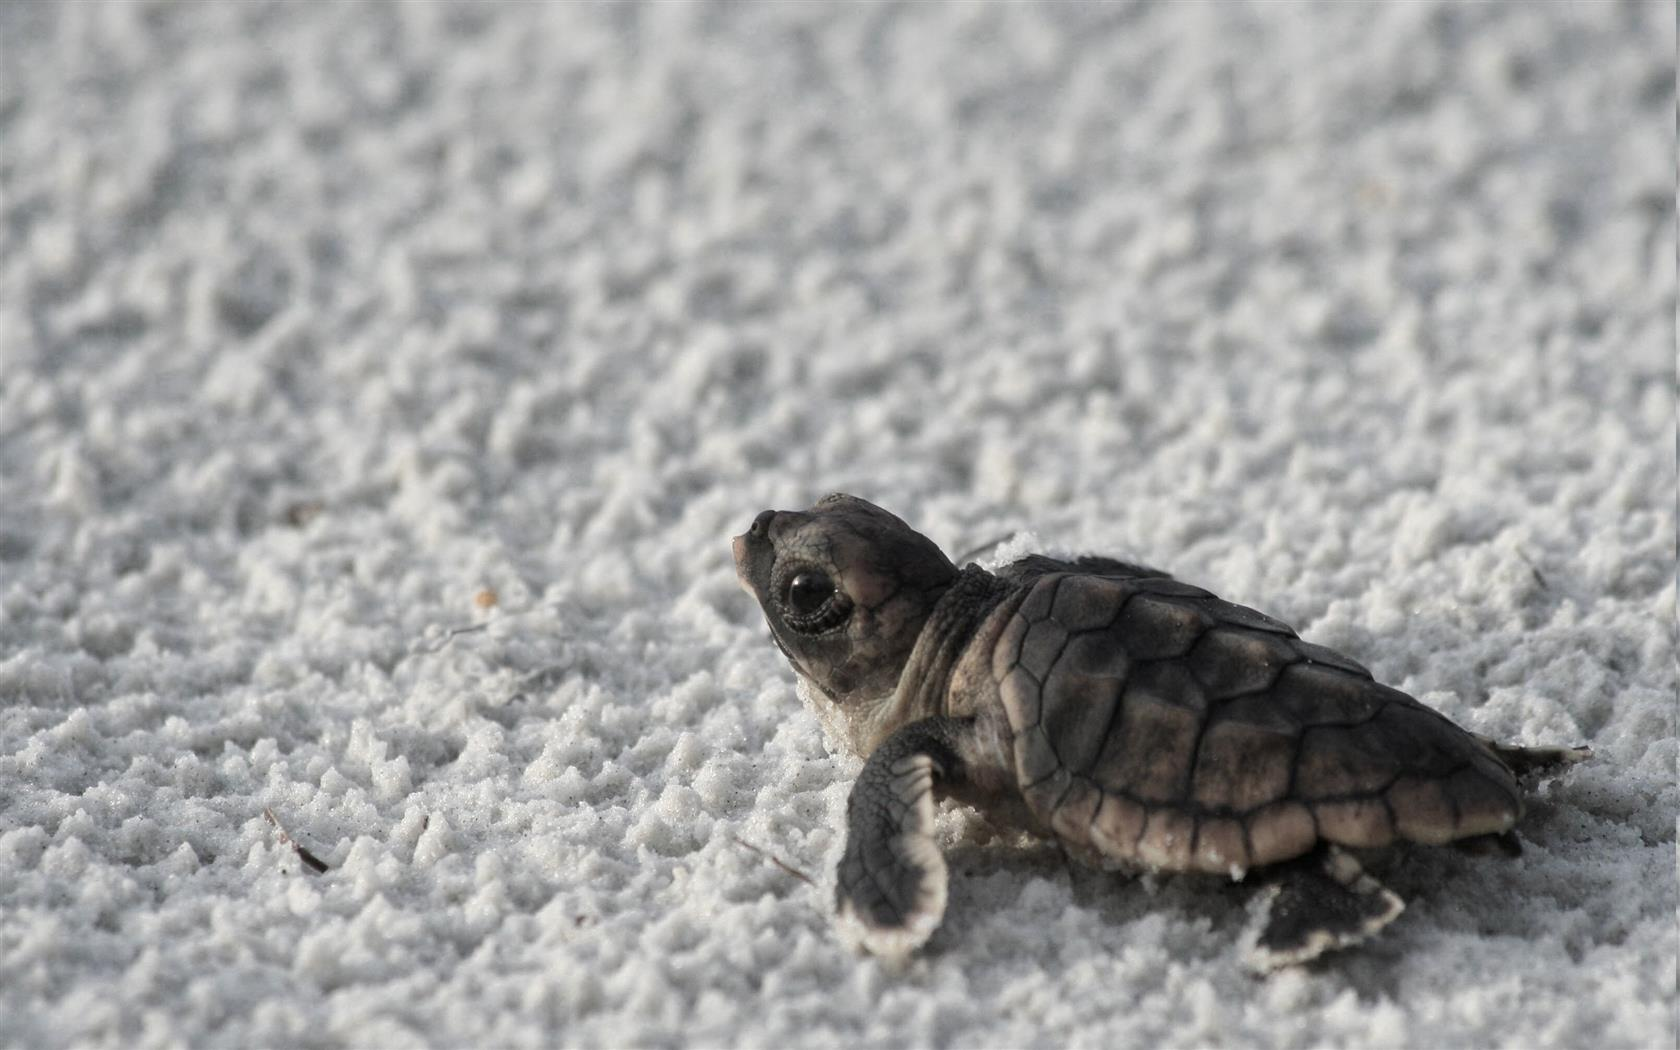 1680x1050 Baby Turtle on Beach